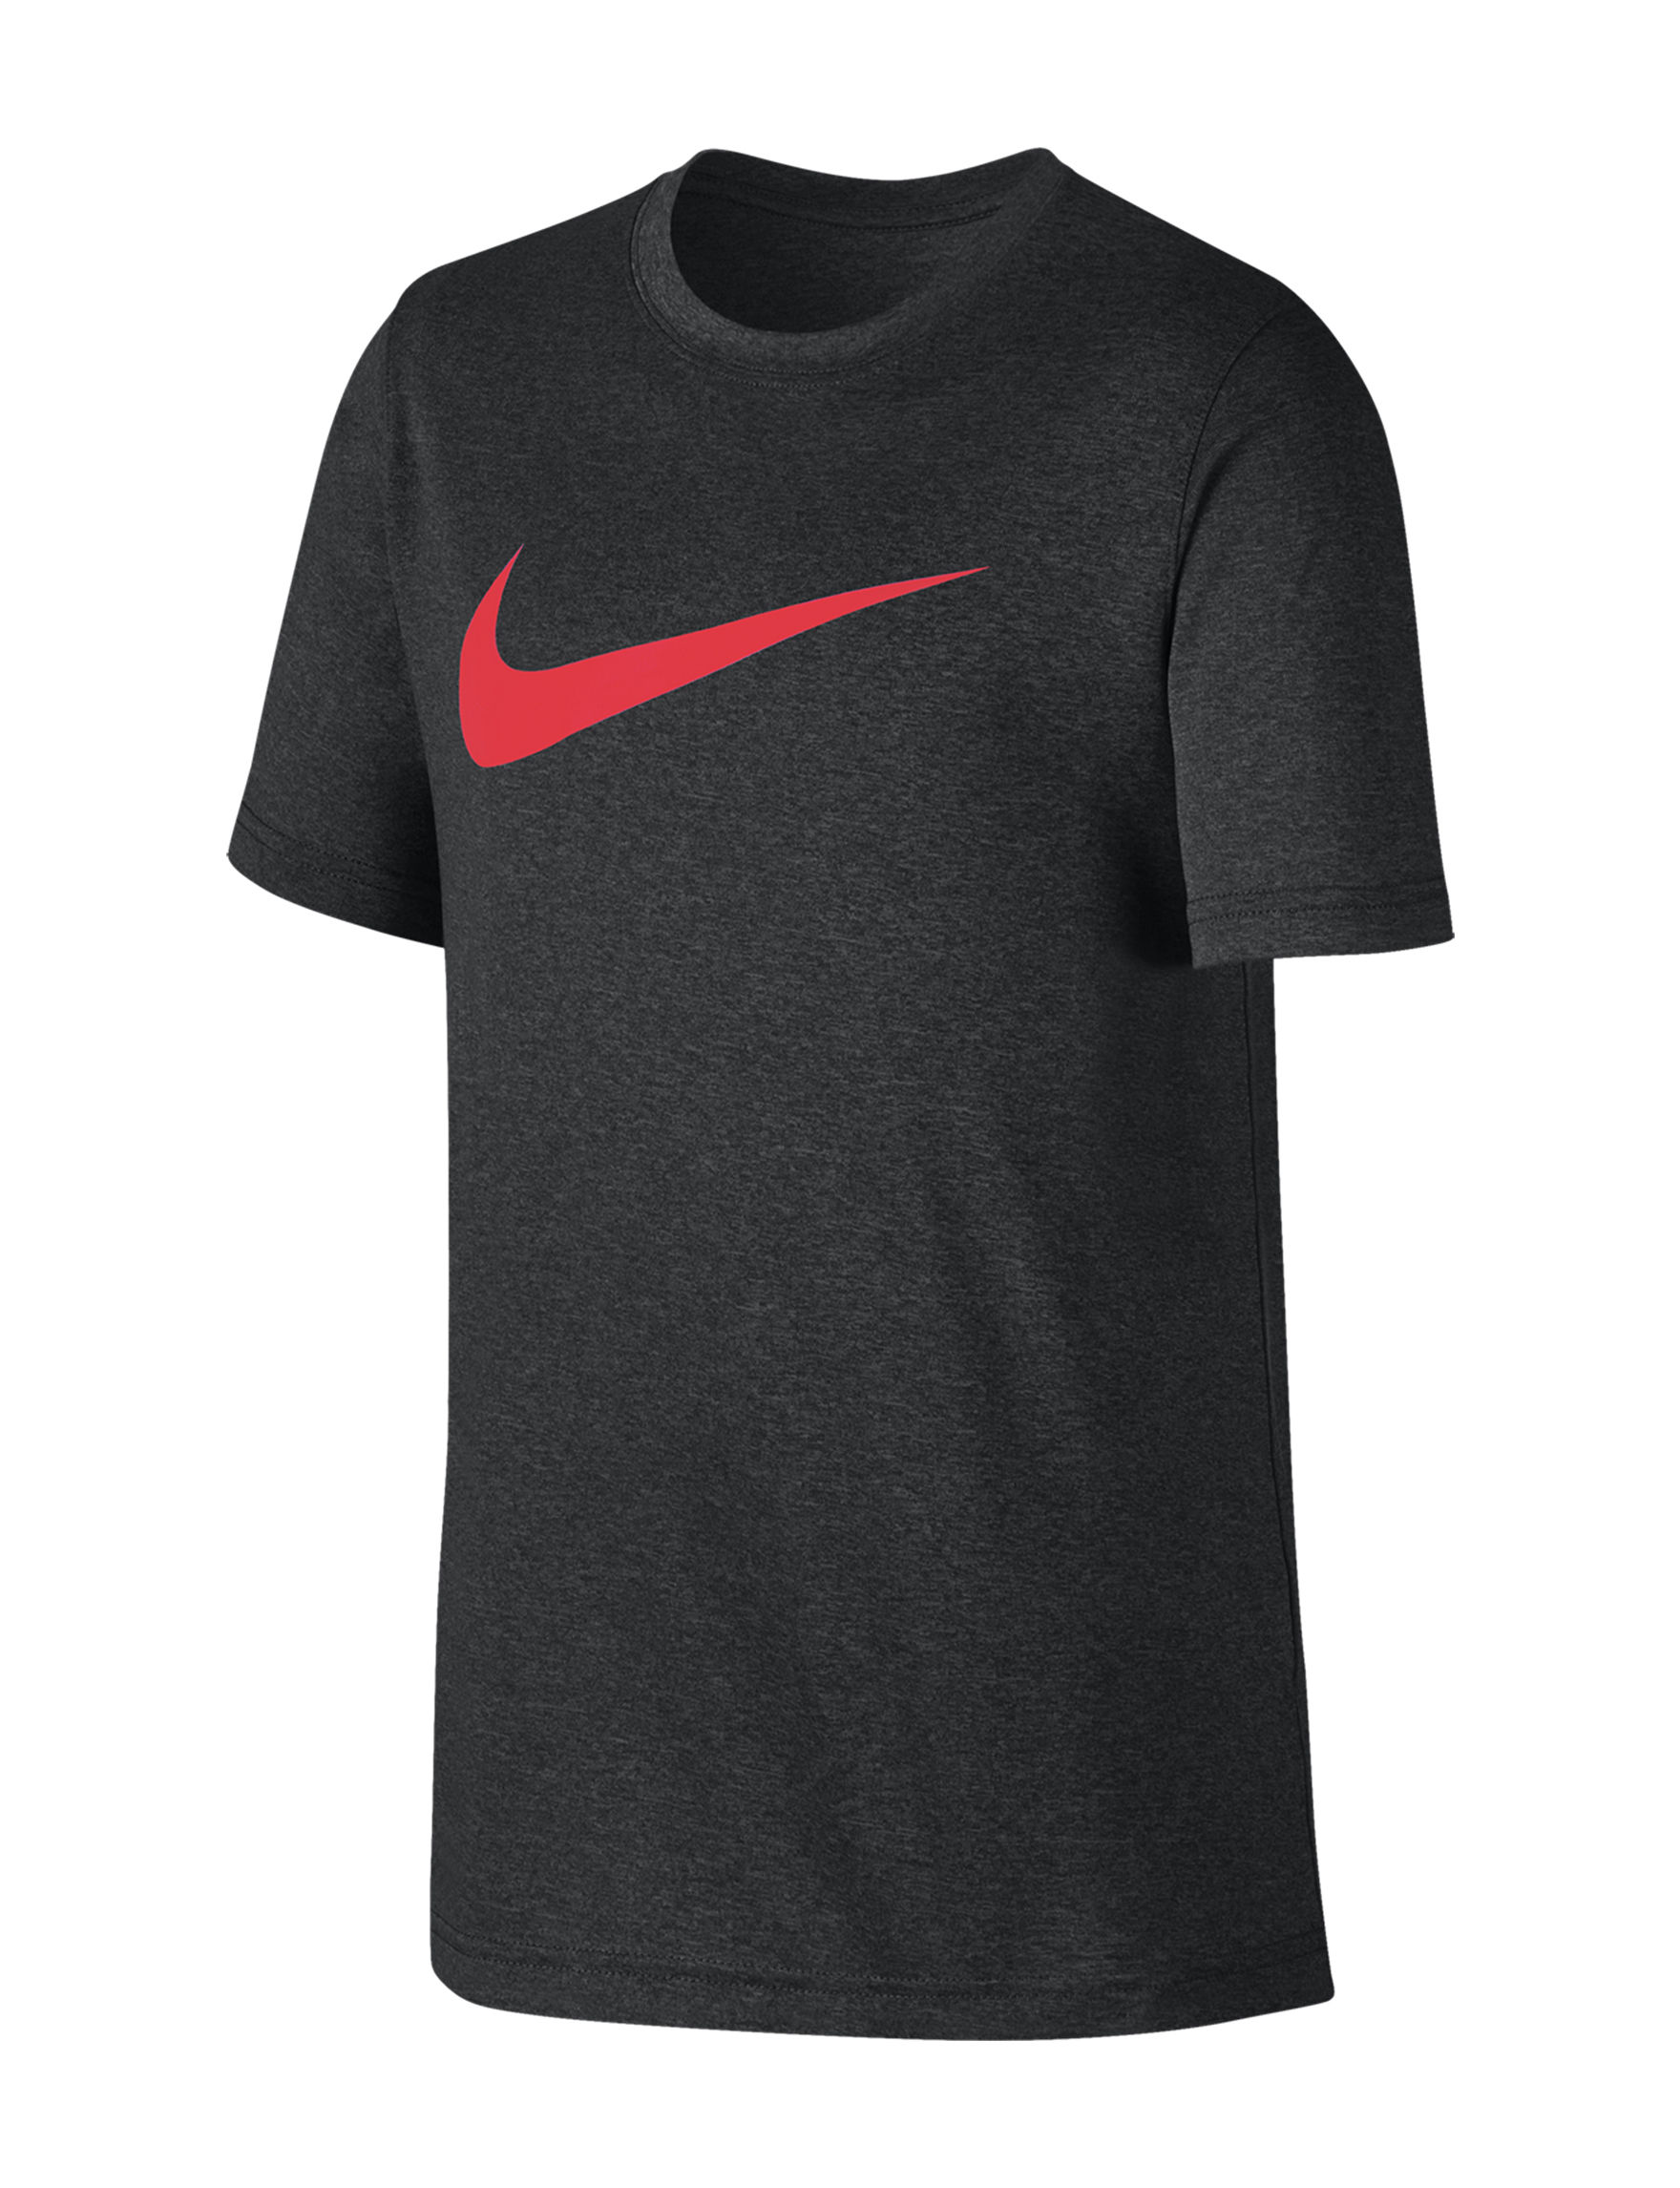 Nike Black / Red Tees & Tanks